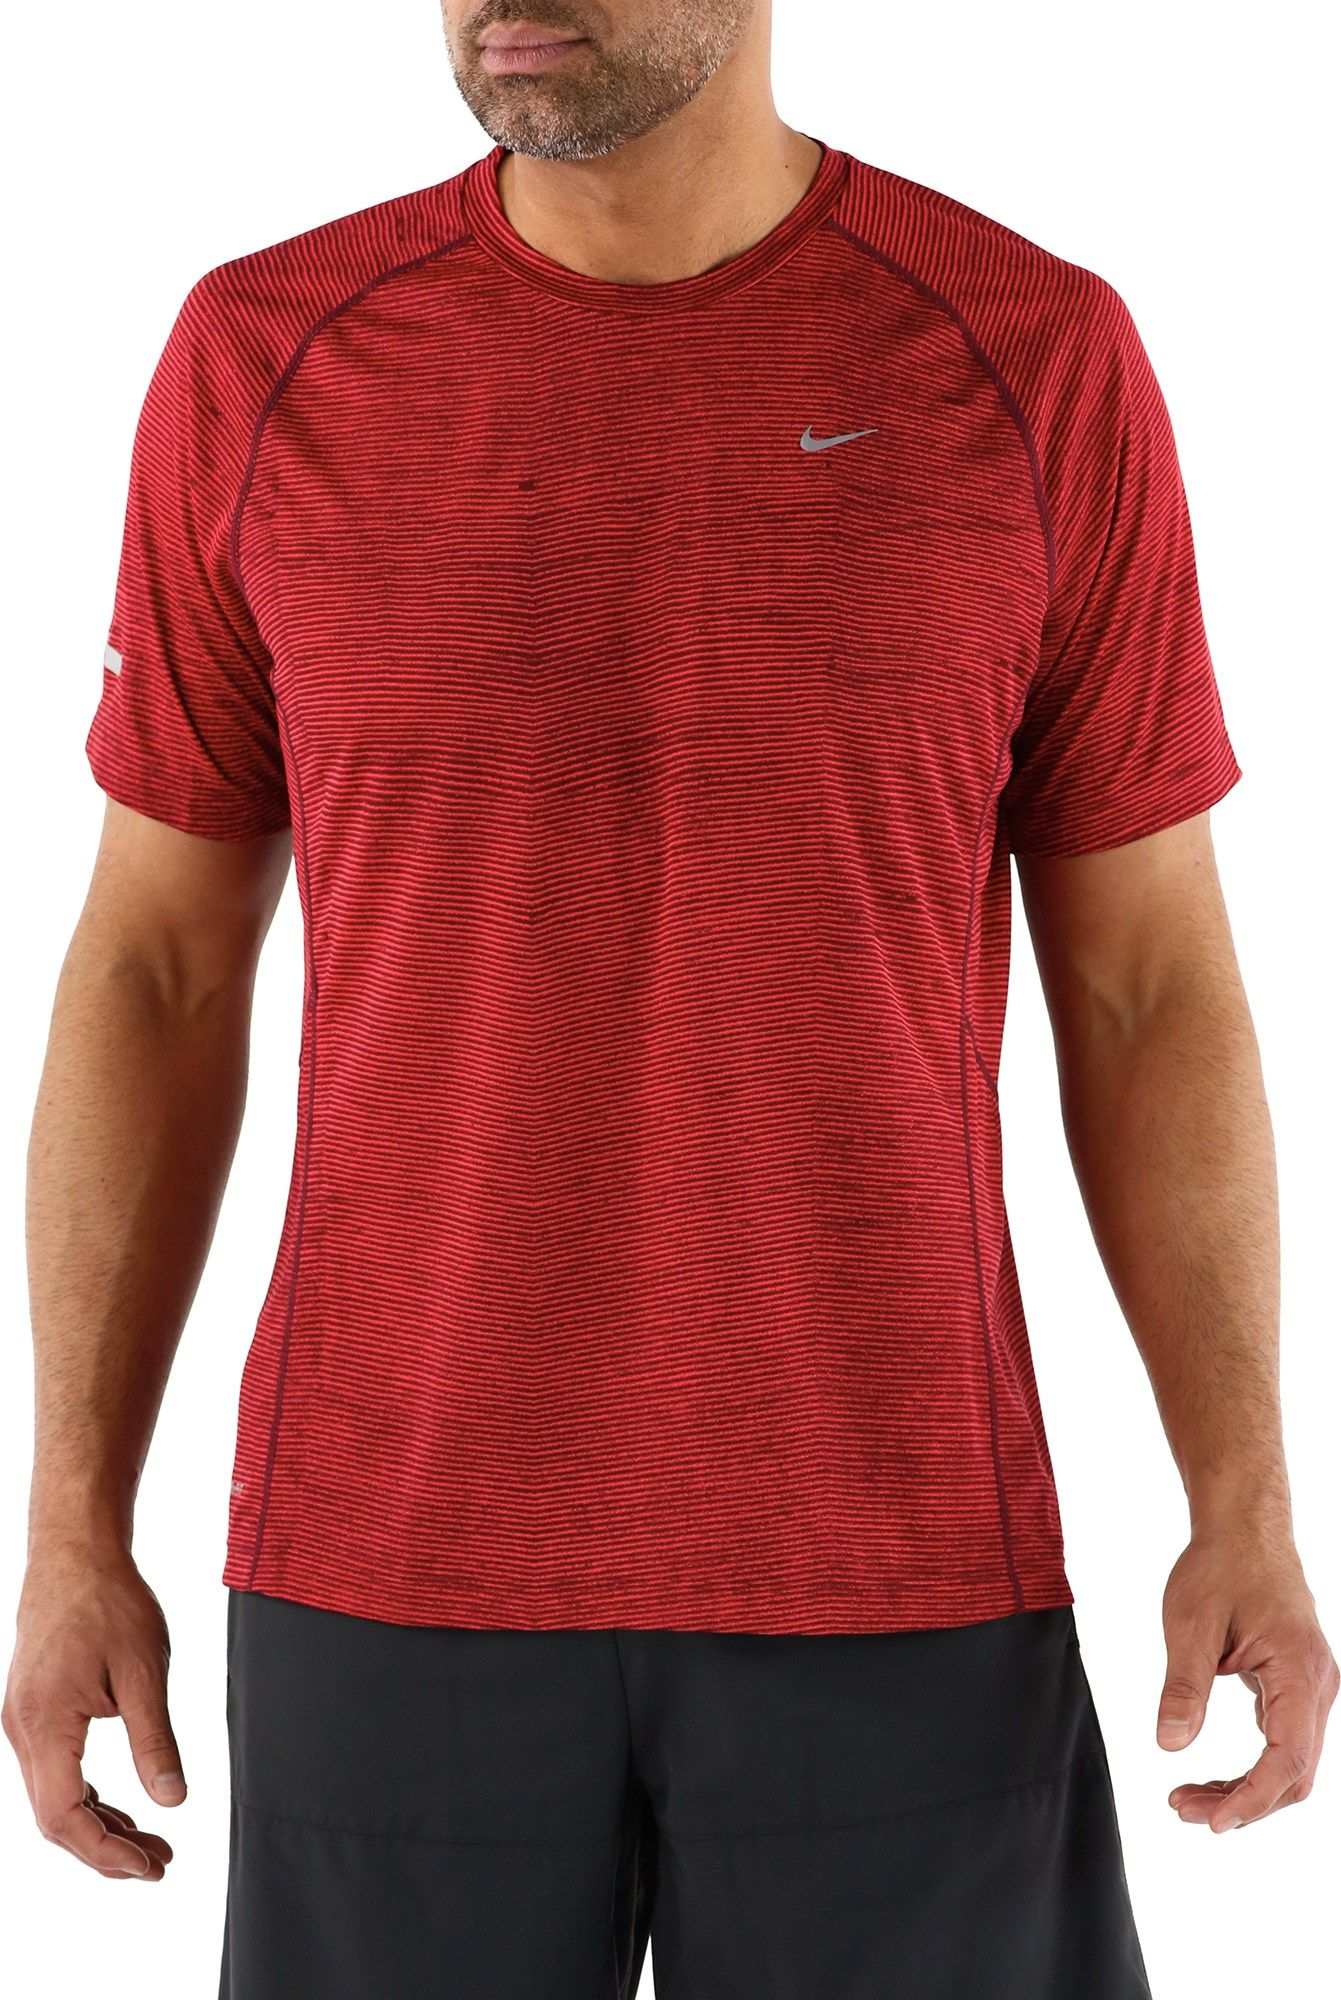 Nike Male Printed Miler Crew T-Shirt - Men's